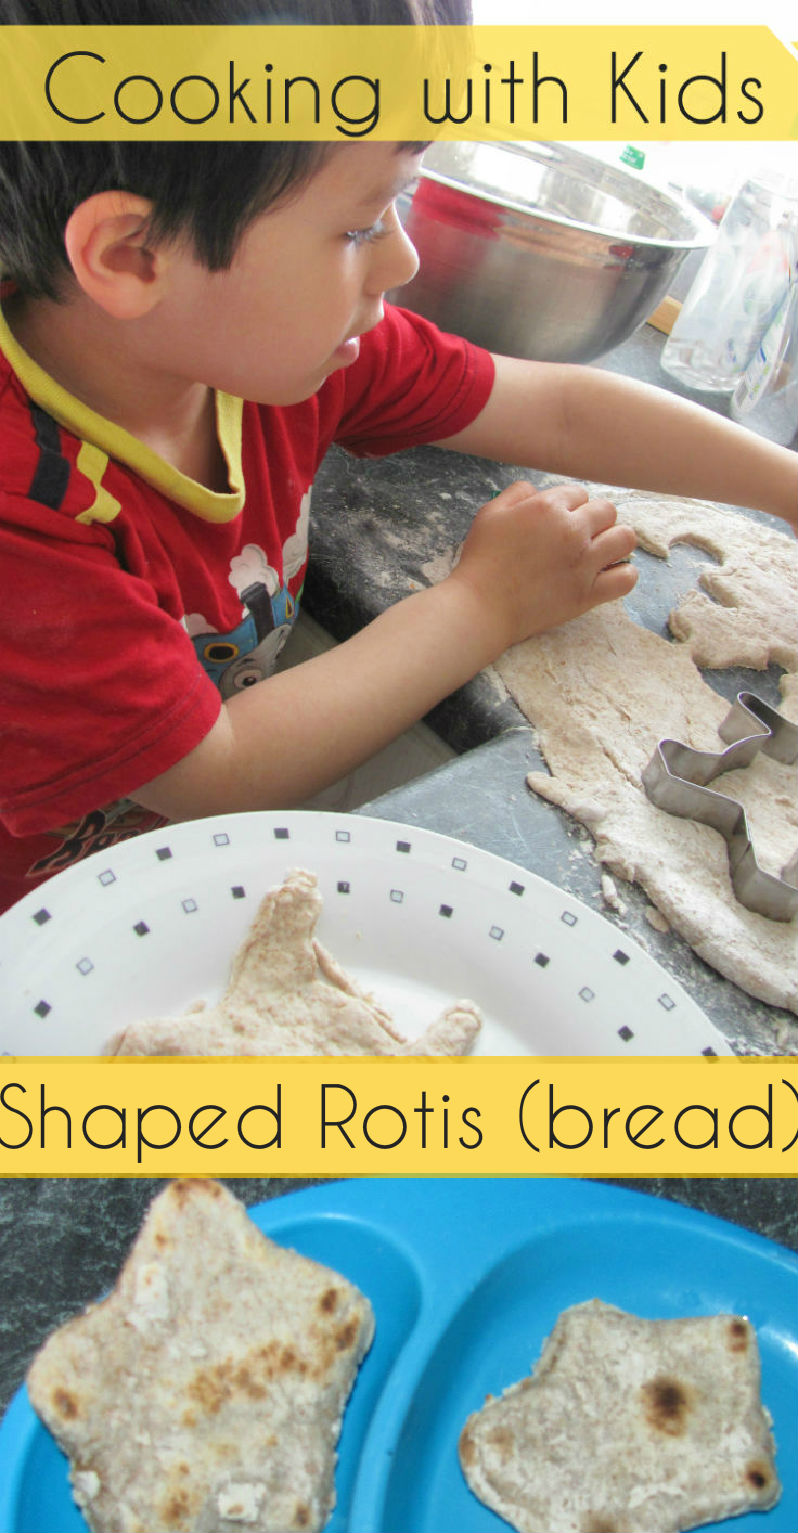 Making shaped rotis with kids - this is lots of fun for them, and the dough can be used like edible playdough